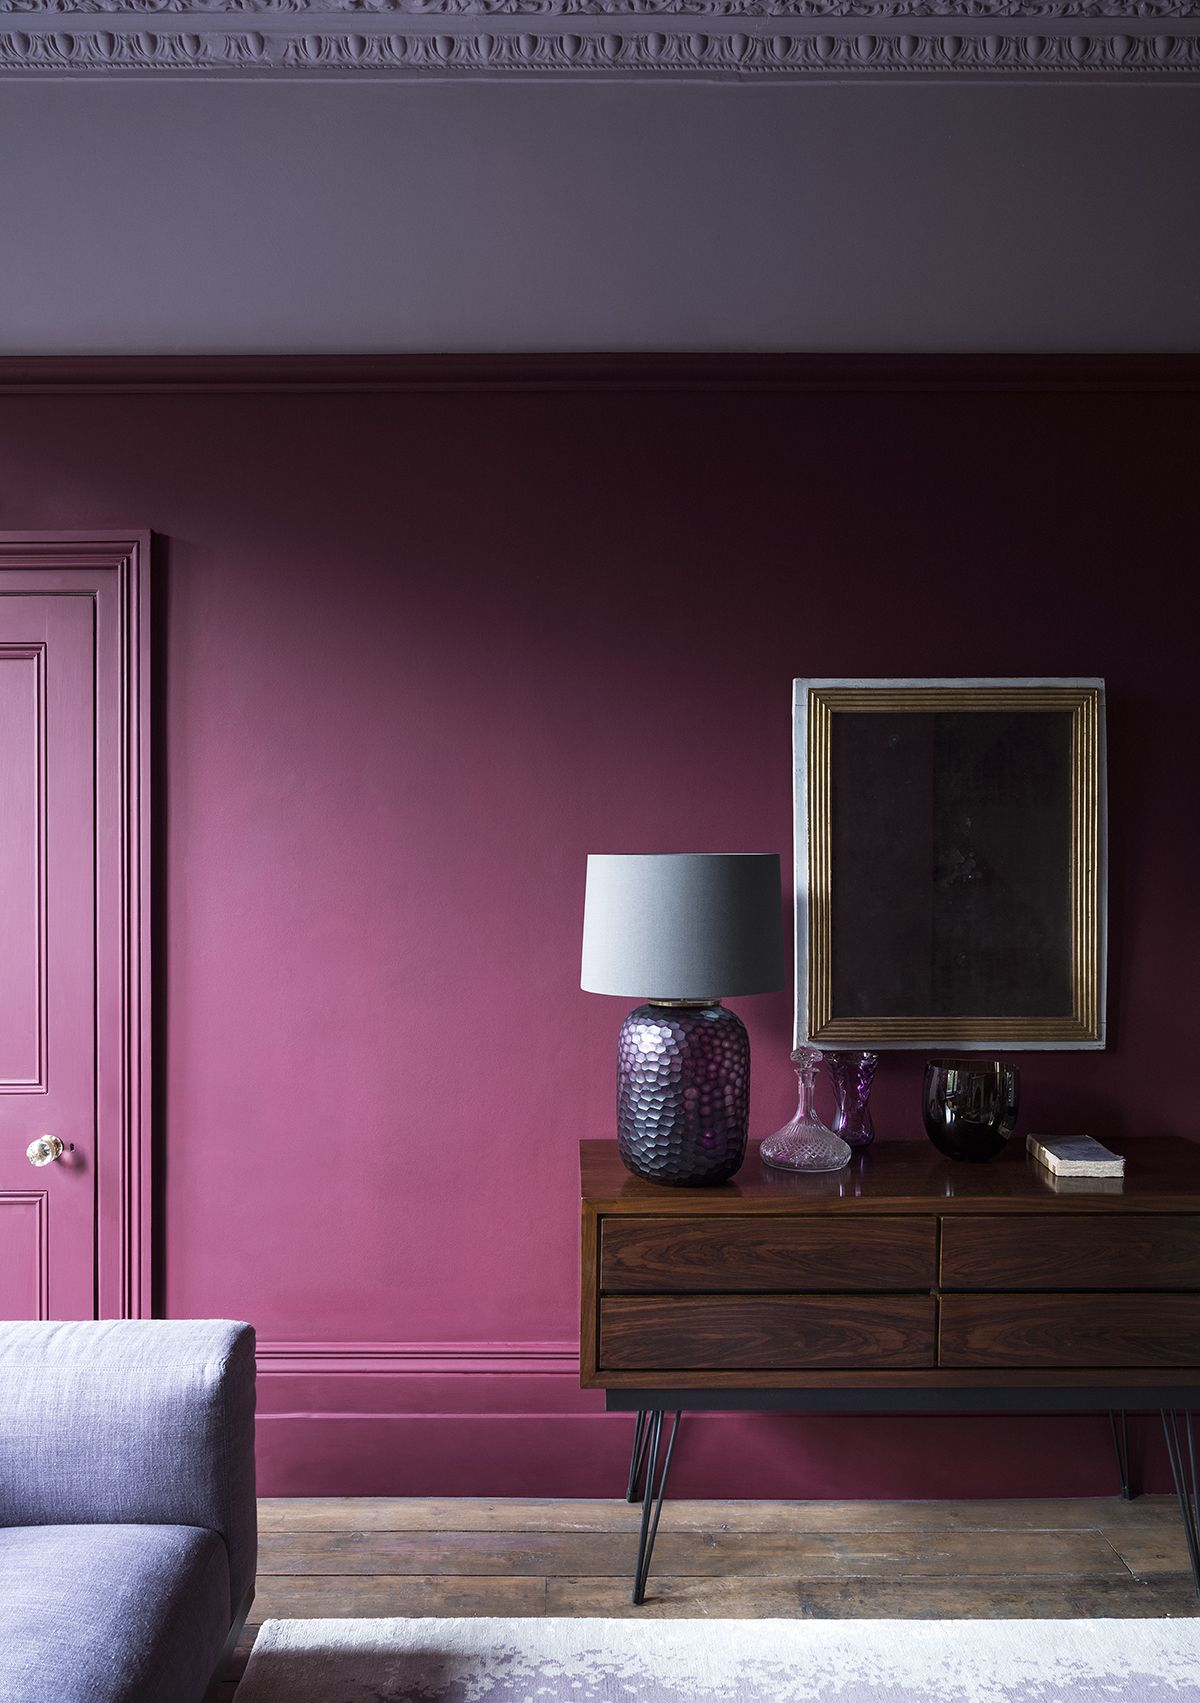 Walls in Grenache 372 | Ceiling in Lady Char's Lilac 368  #paint #ideas #home #decor #pink #red #bold #livingroom